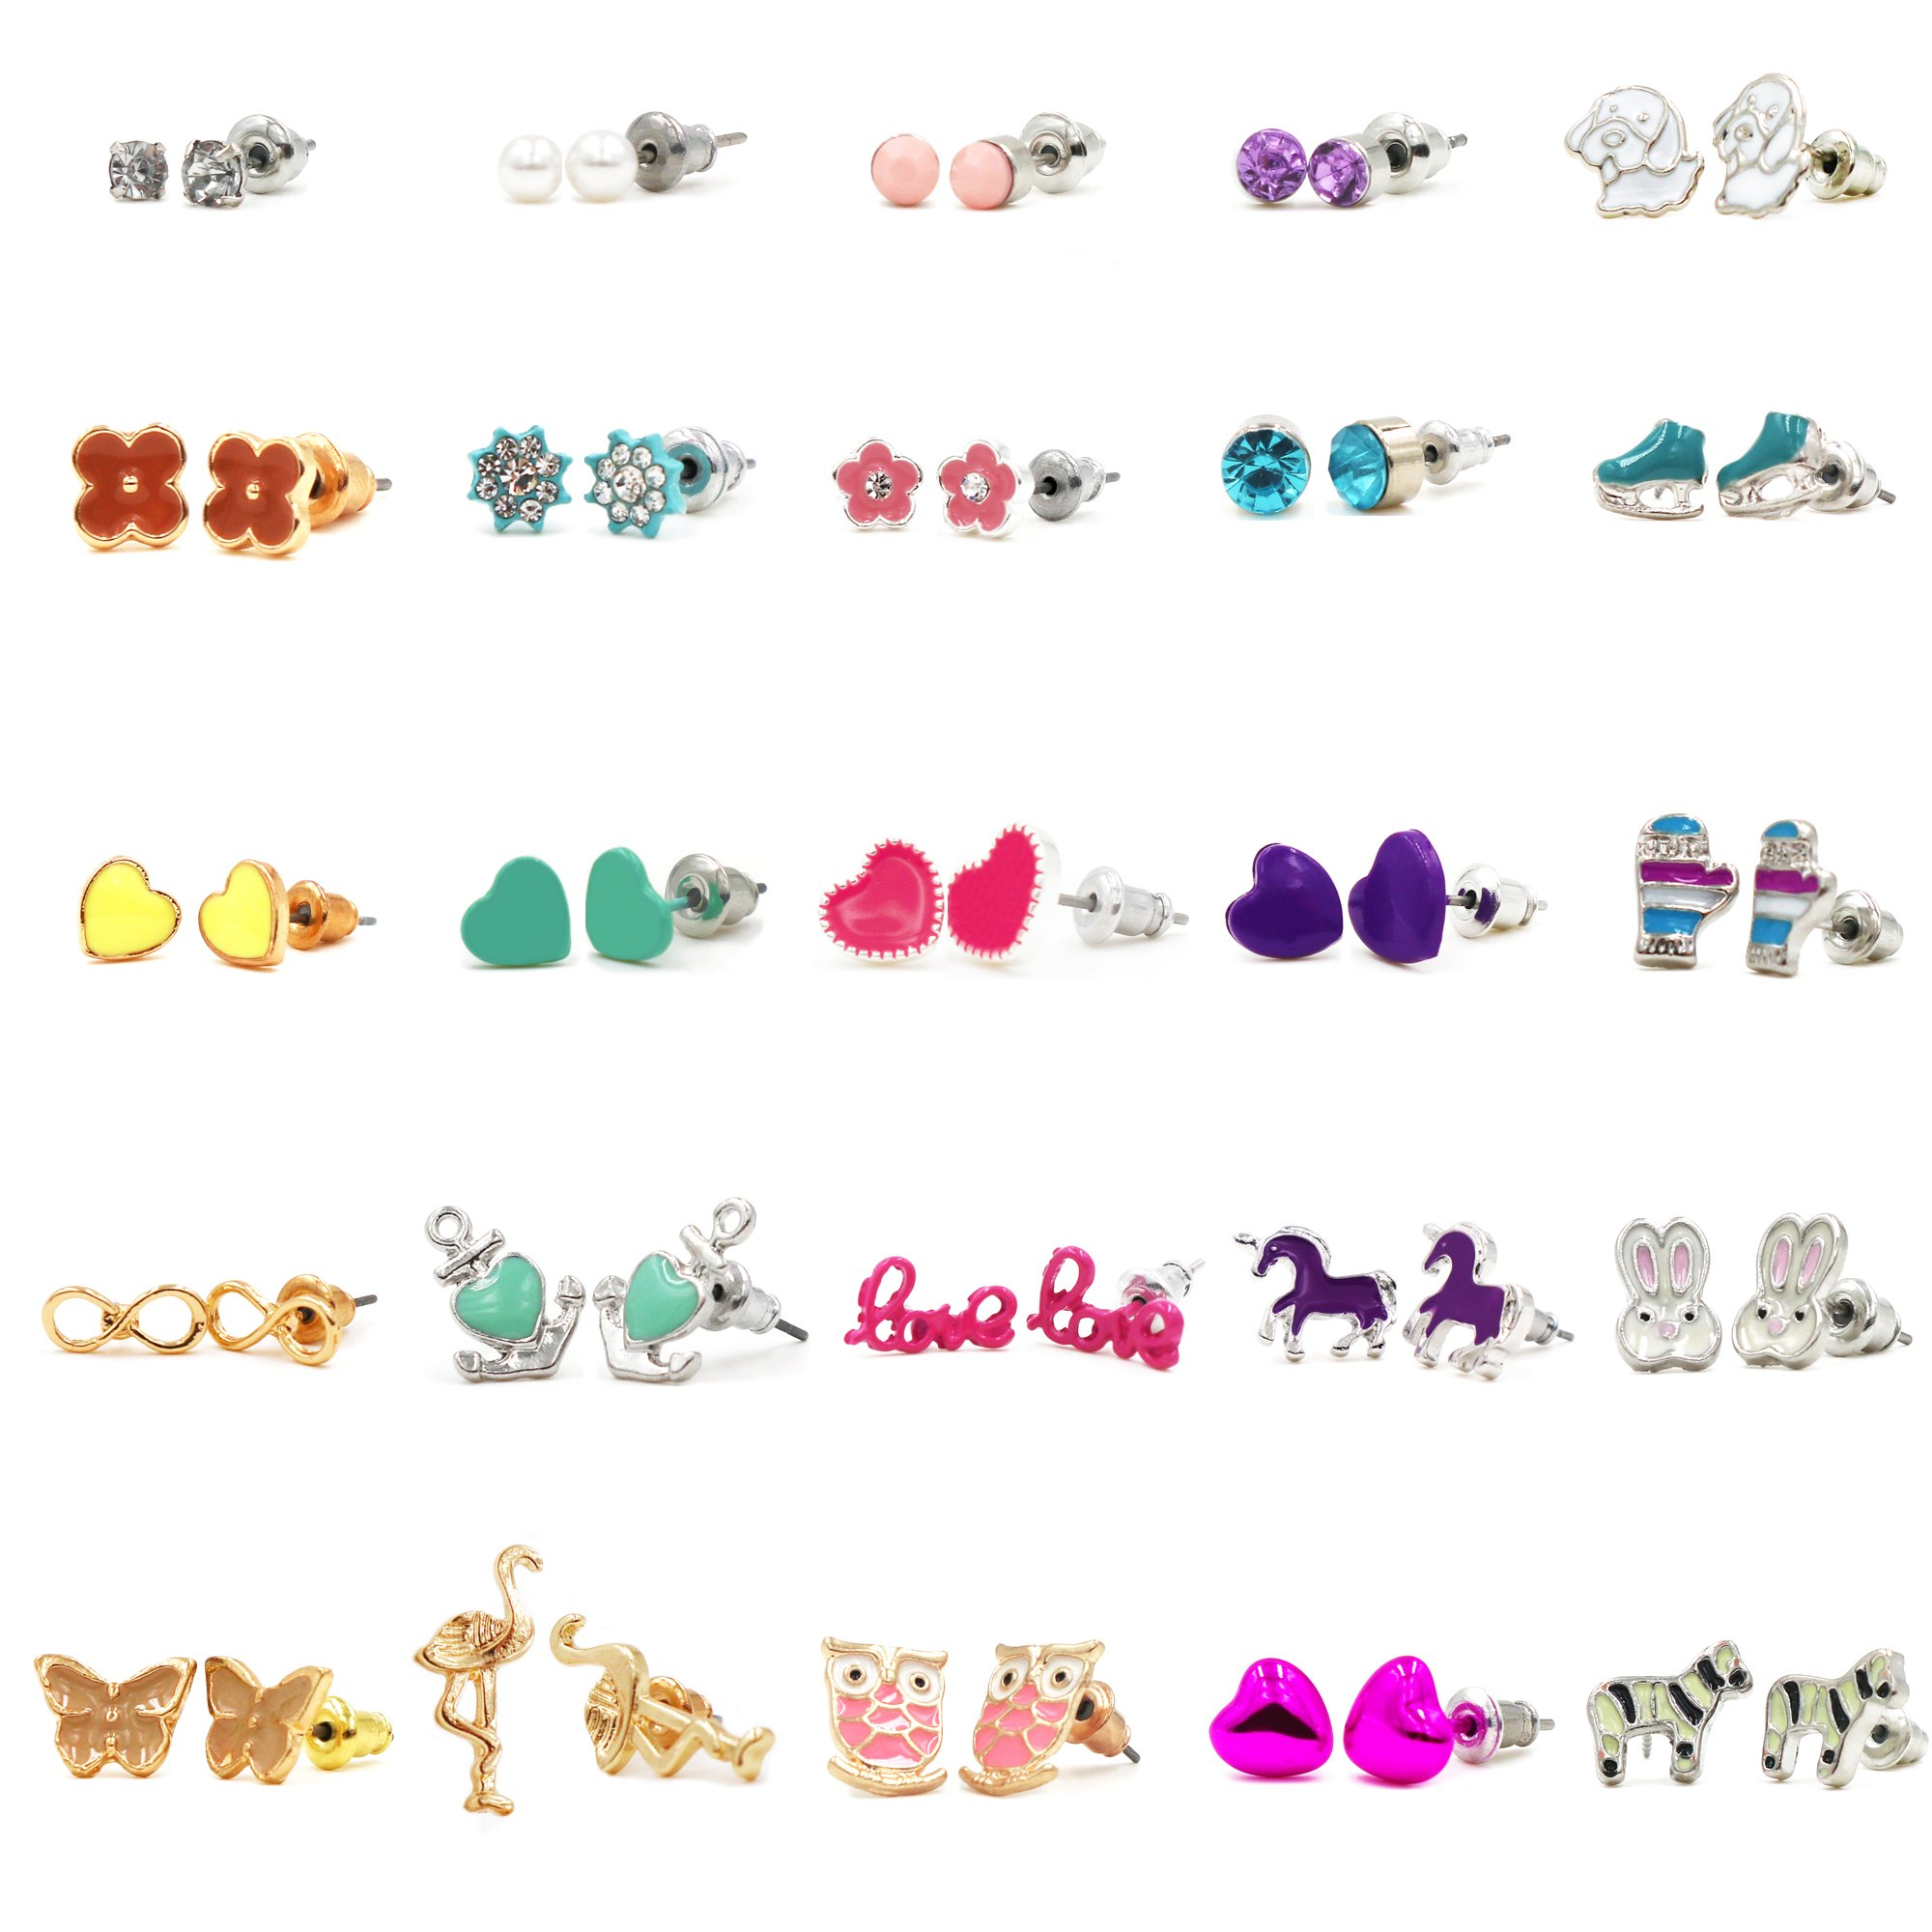 Cryseam Gold Plated&Sliver Plated 25 Pairs Stainless Steel Post Multiple Animal Artificial gem Stud Earrings Set for Girls lady women (Style 2)